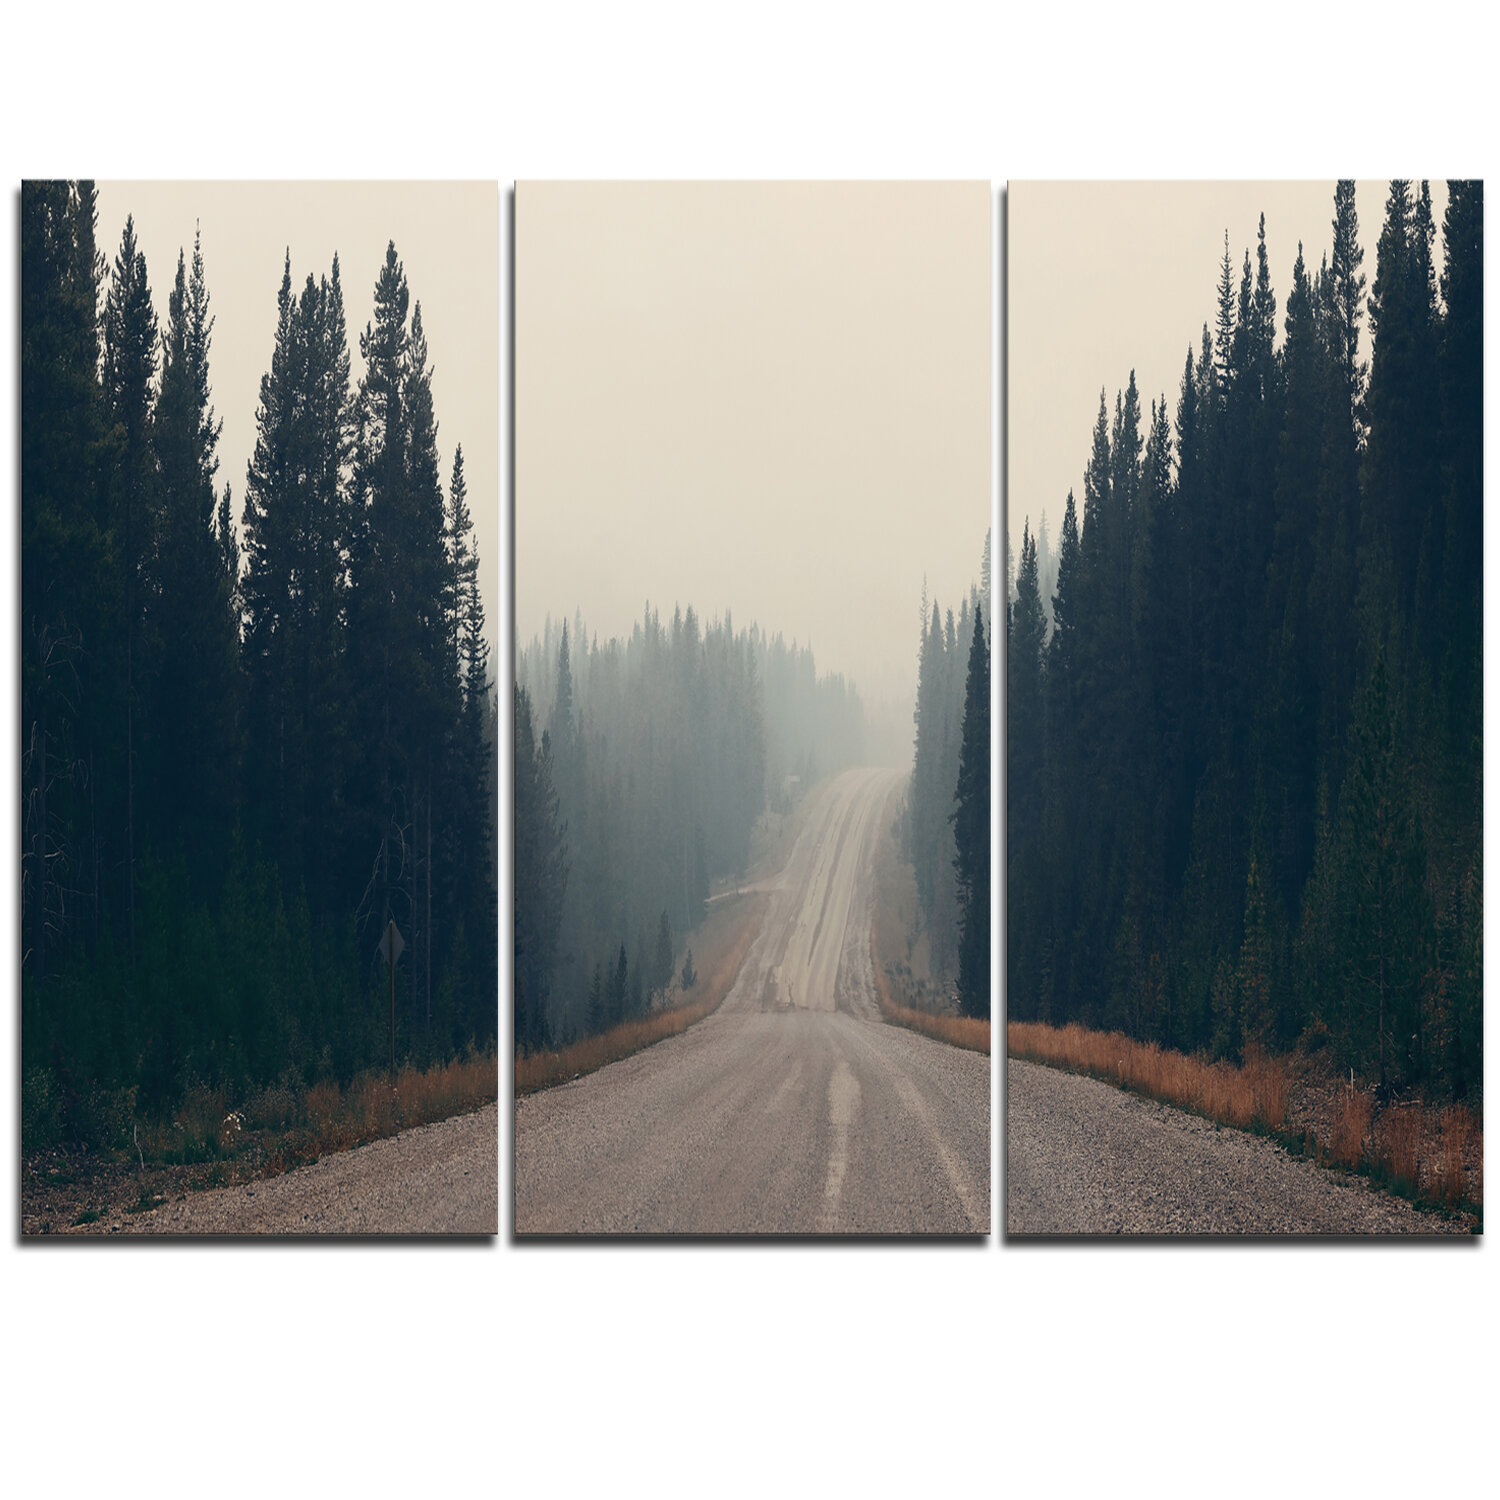 Designart Foggy Road In Forest In Banff Park 3 Piece Graphic Art On Wrapped Canvas Set Wayfair